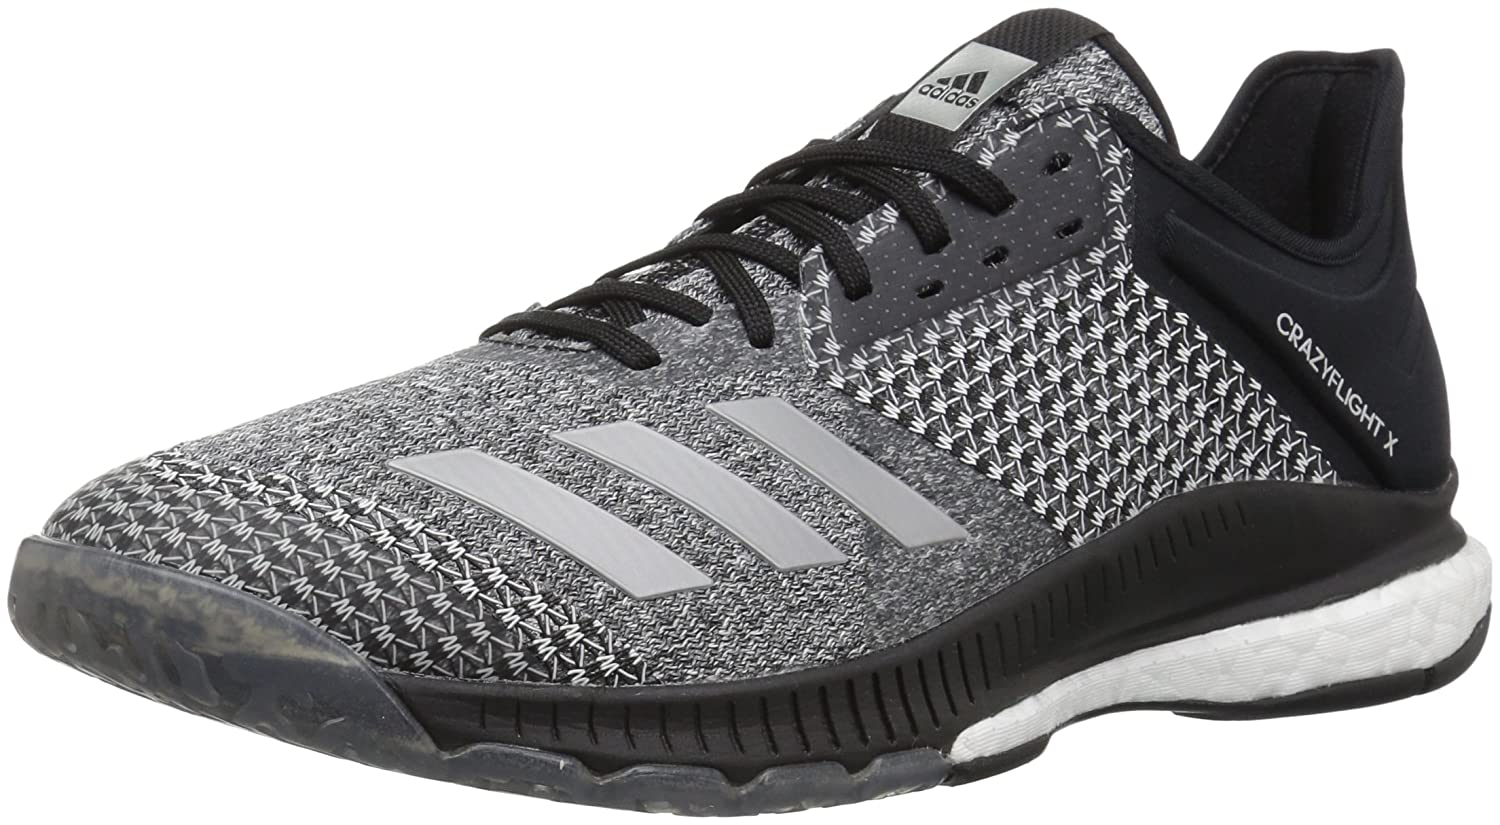 adidas Women's Crazyflight X 2 Volleyball Shoe B077X4NQBS 6.5 B(M) US|Black/Silver Metallic/White